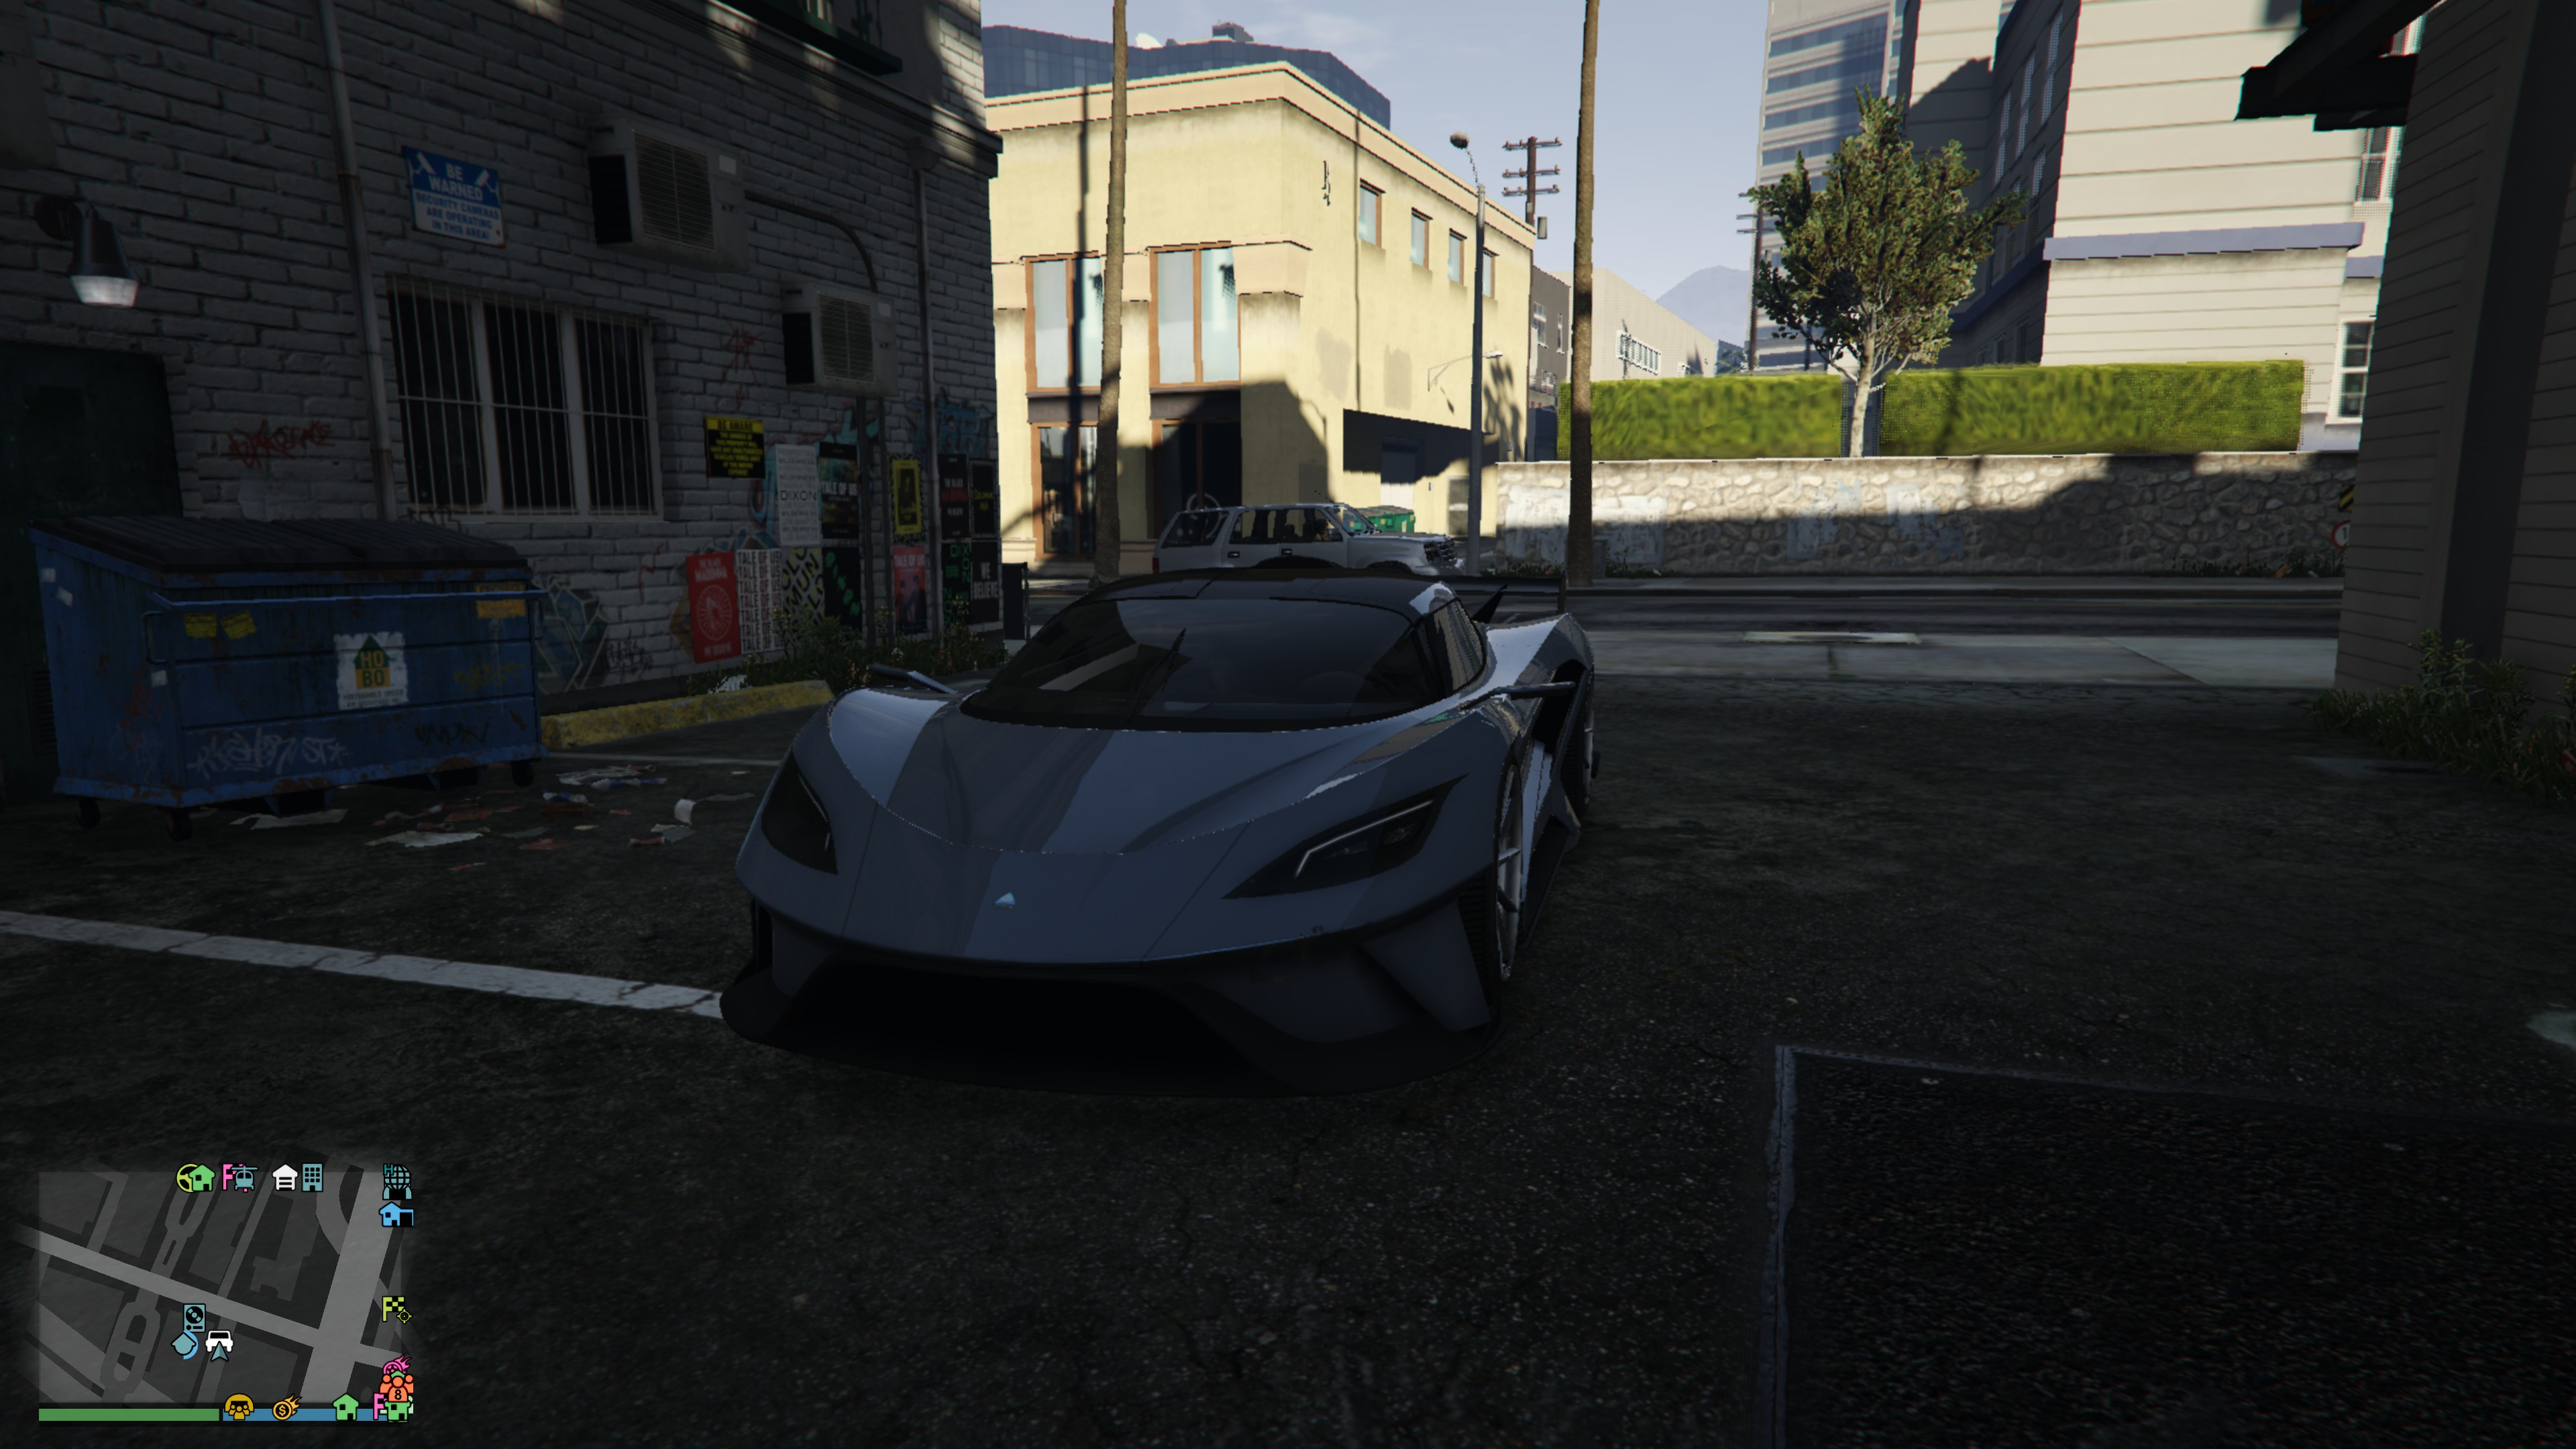 Grand Theft Auto V (271590) · Issue #37 · ValveSoftware/Proton · GitHub